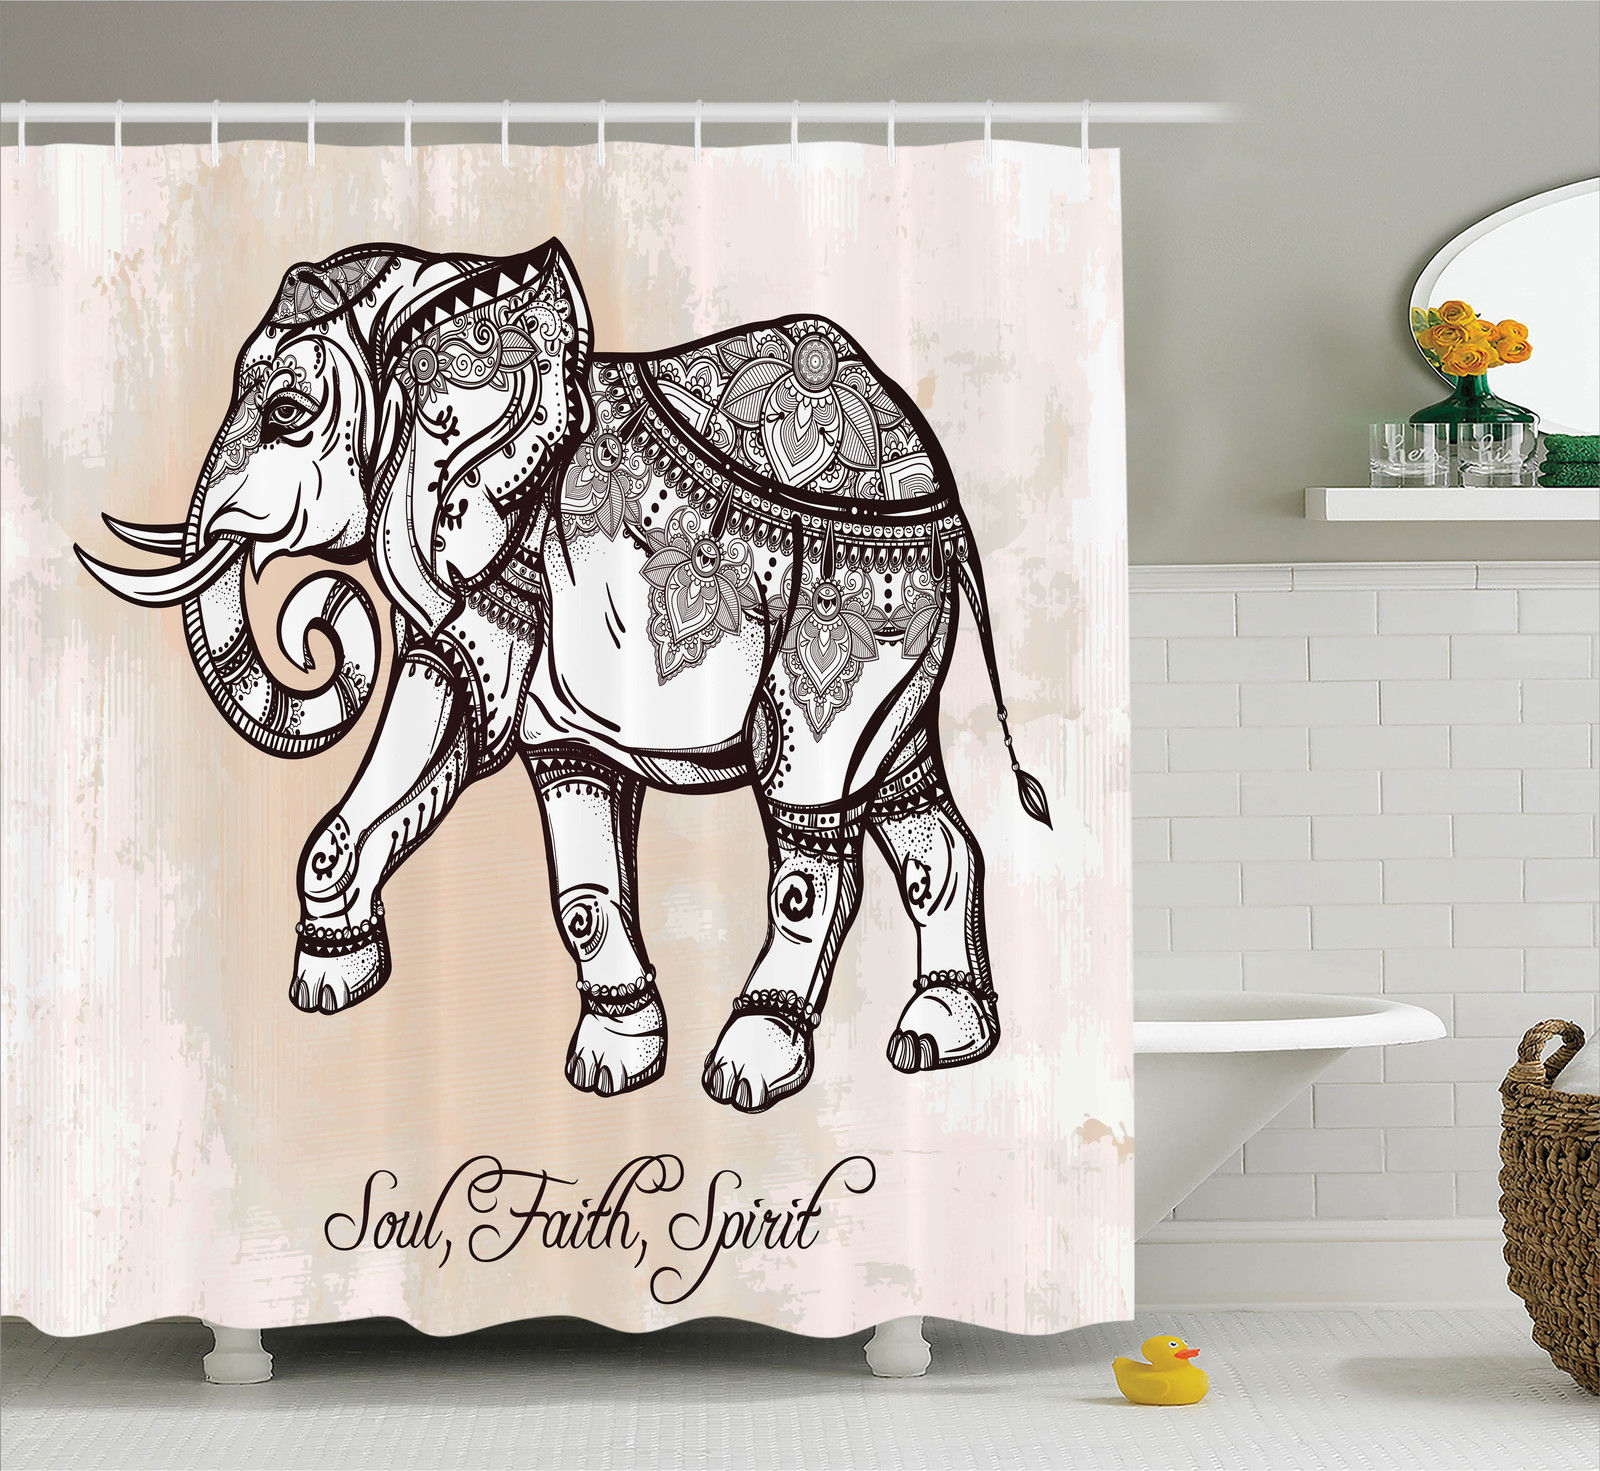 Charmant Elephants Decor Shower Curtain Set, Indian Ethnic Elephant Illustration  Oriental Mandala Style Patterns Boho Home